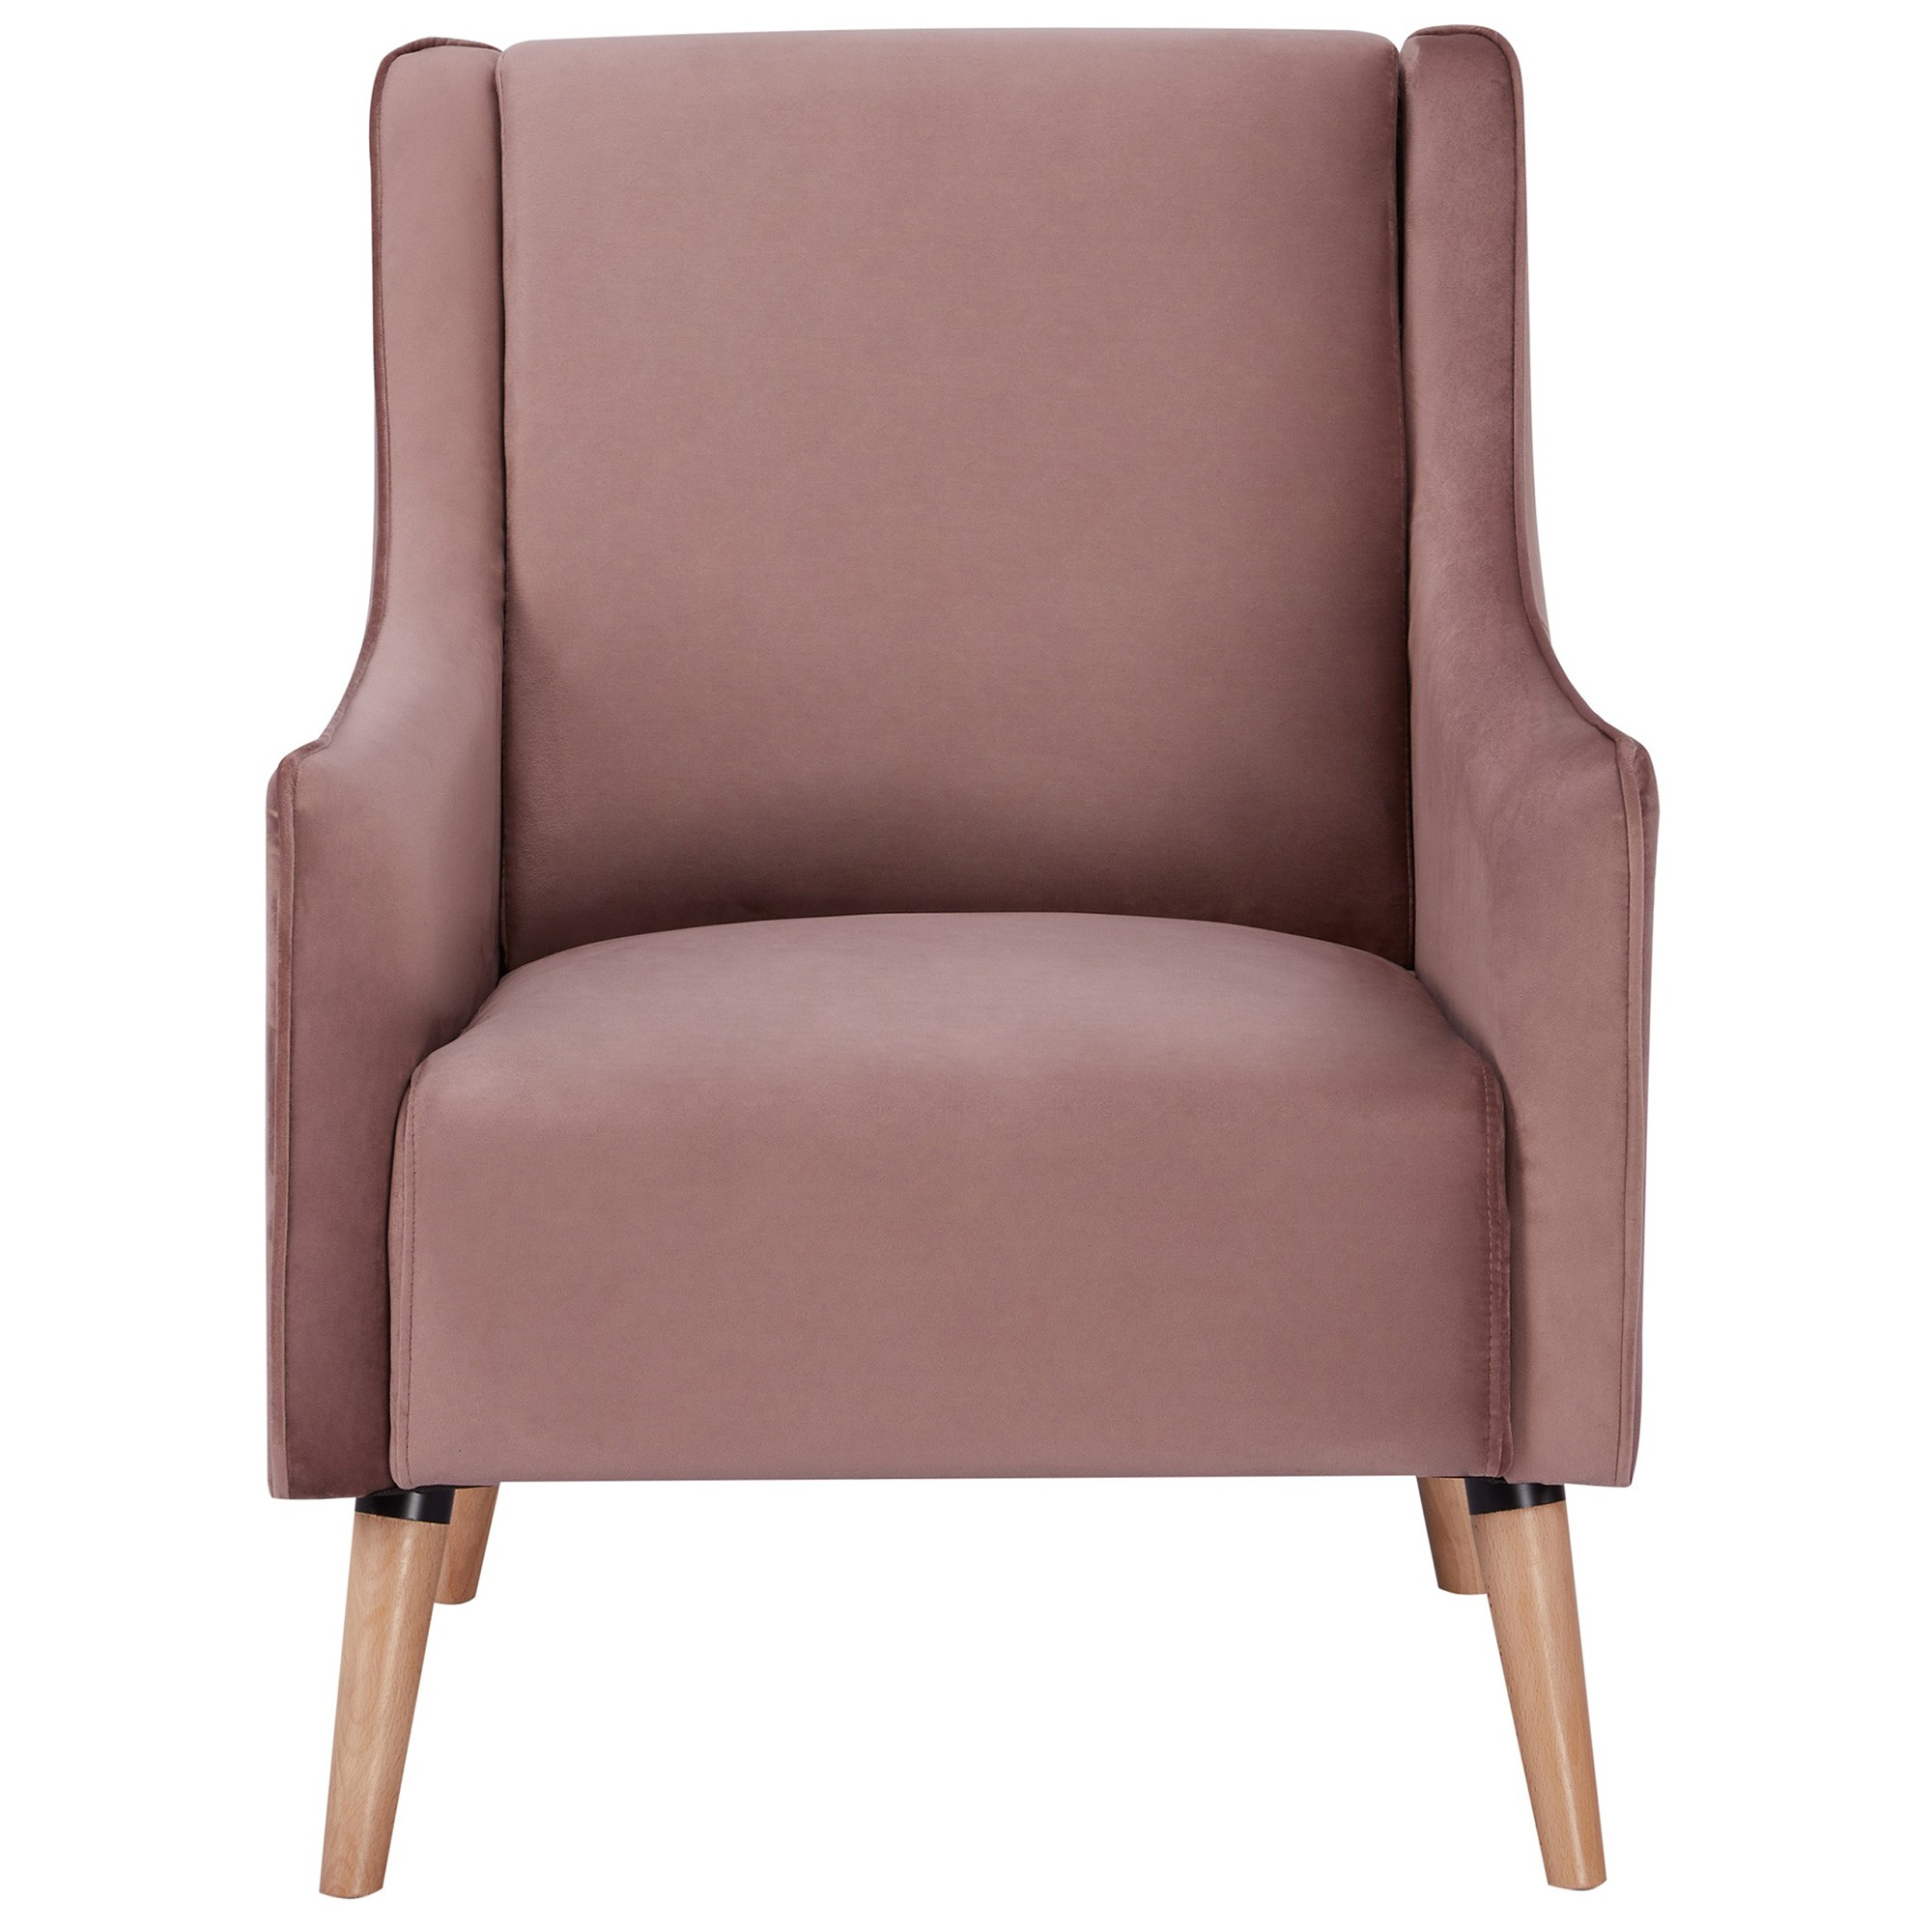 Boneo Fabric Armchair, Blush